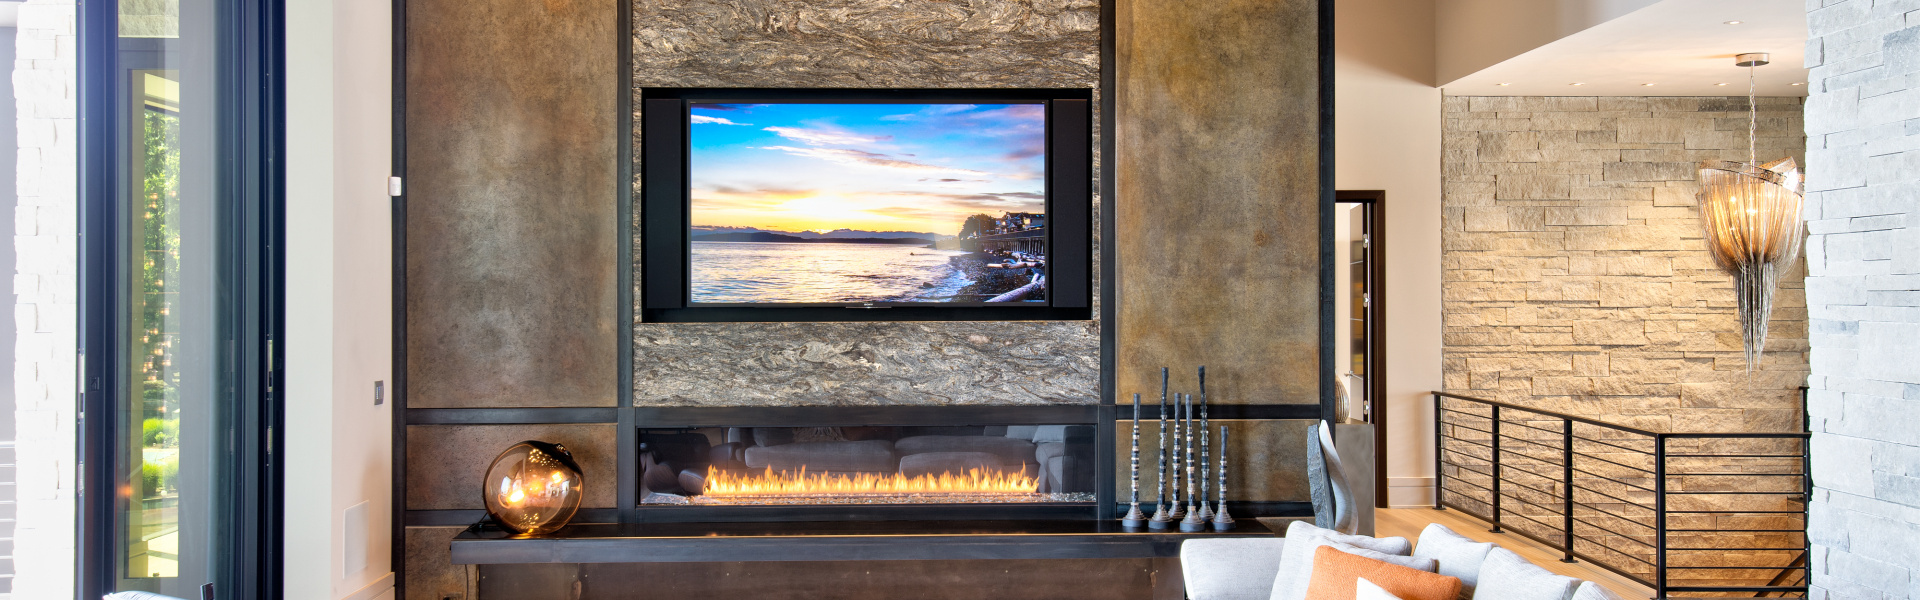 Smart home installation by Premier Group for Carmel